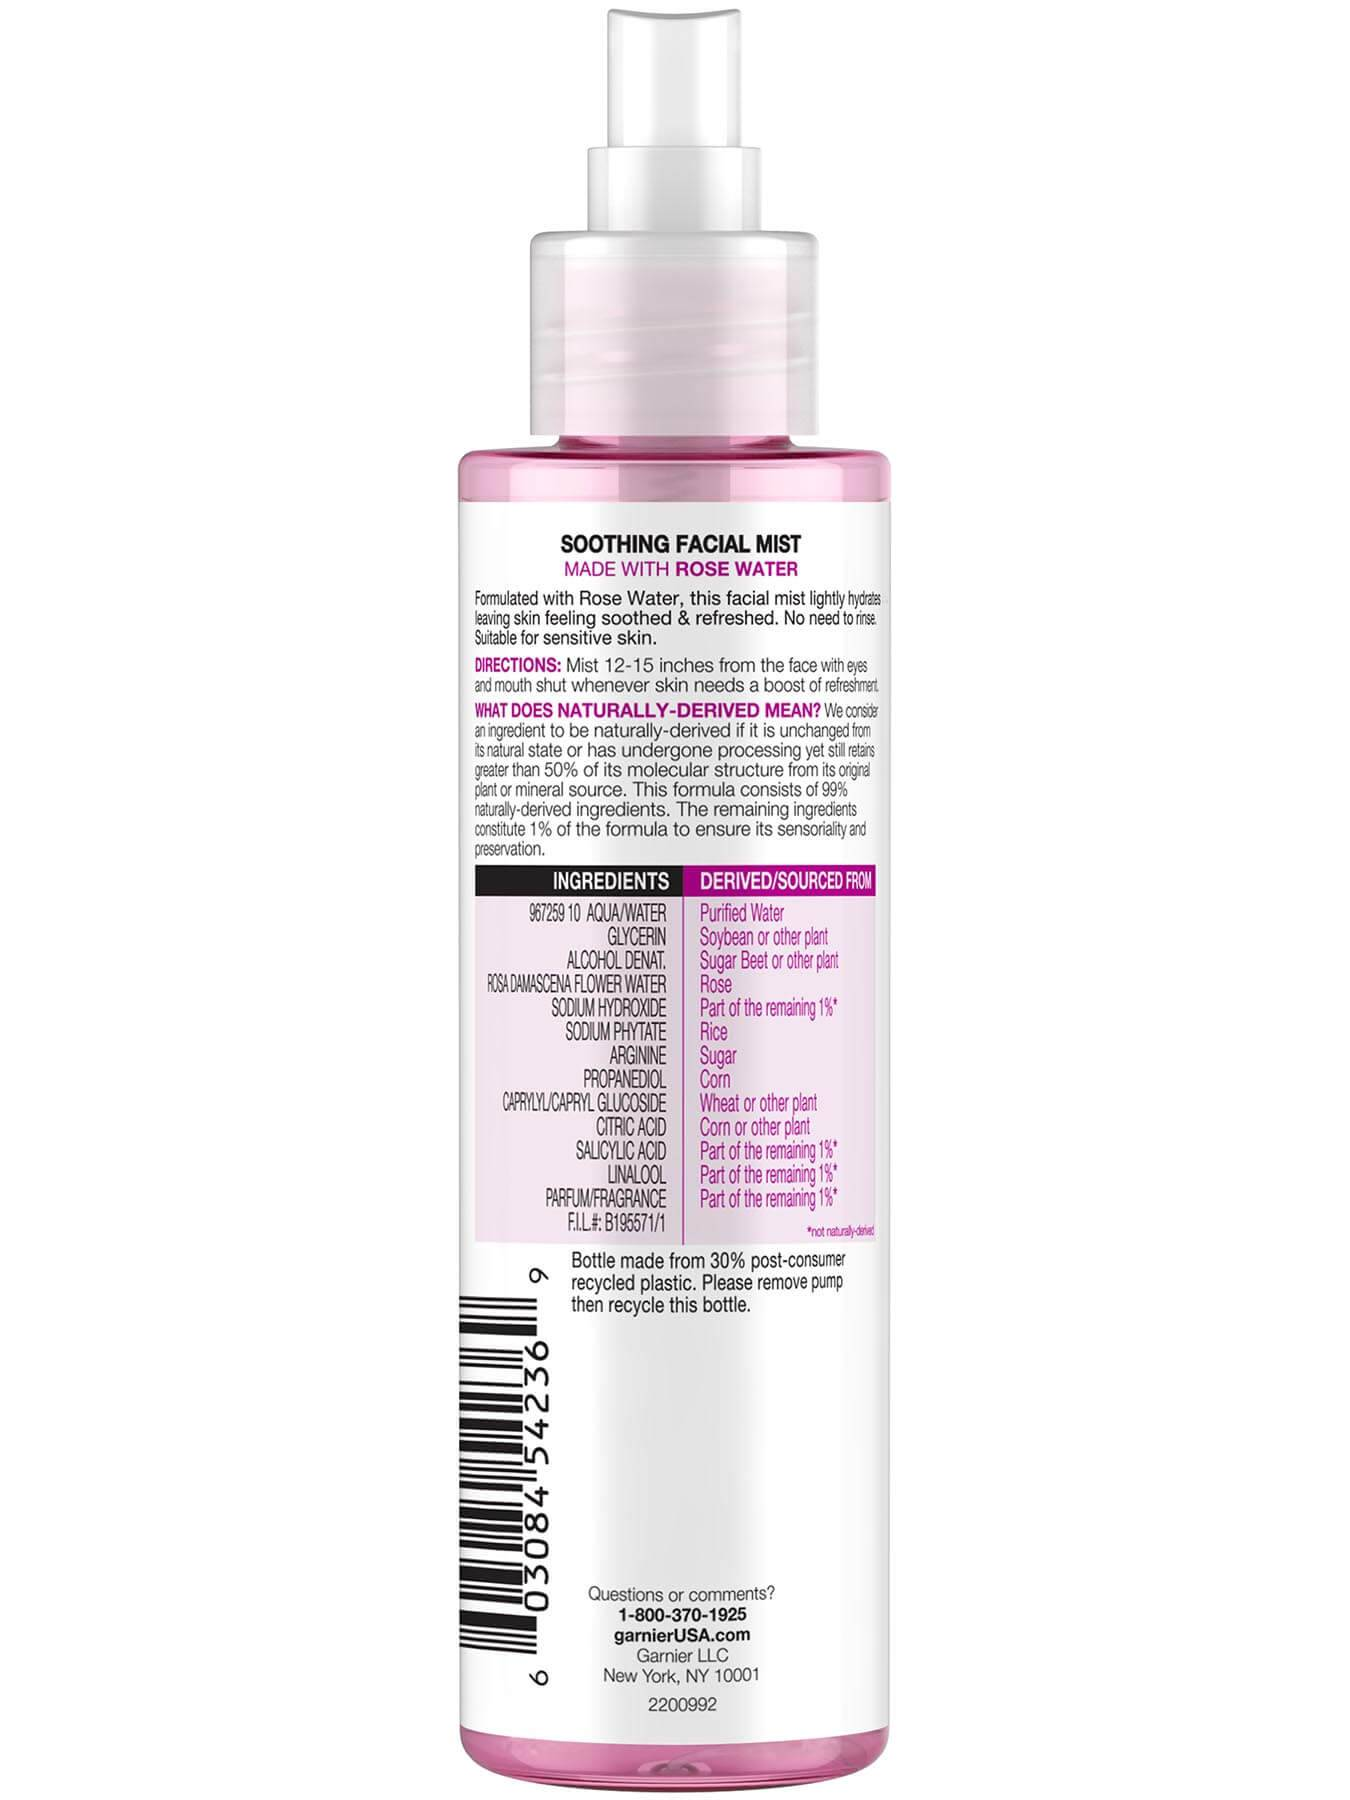 Garnier SkinActive Soothing Facial Mist with Rose Water 96 Percent Naturally Derived Ingredients